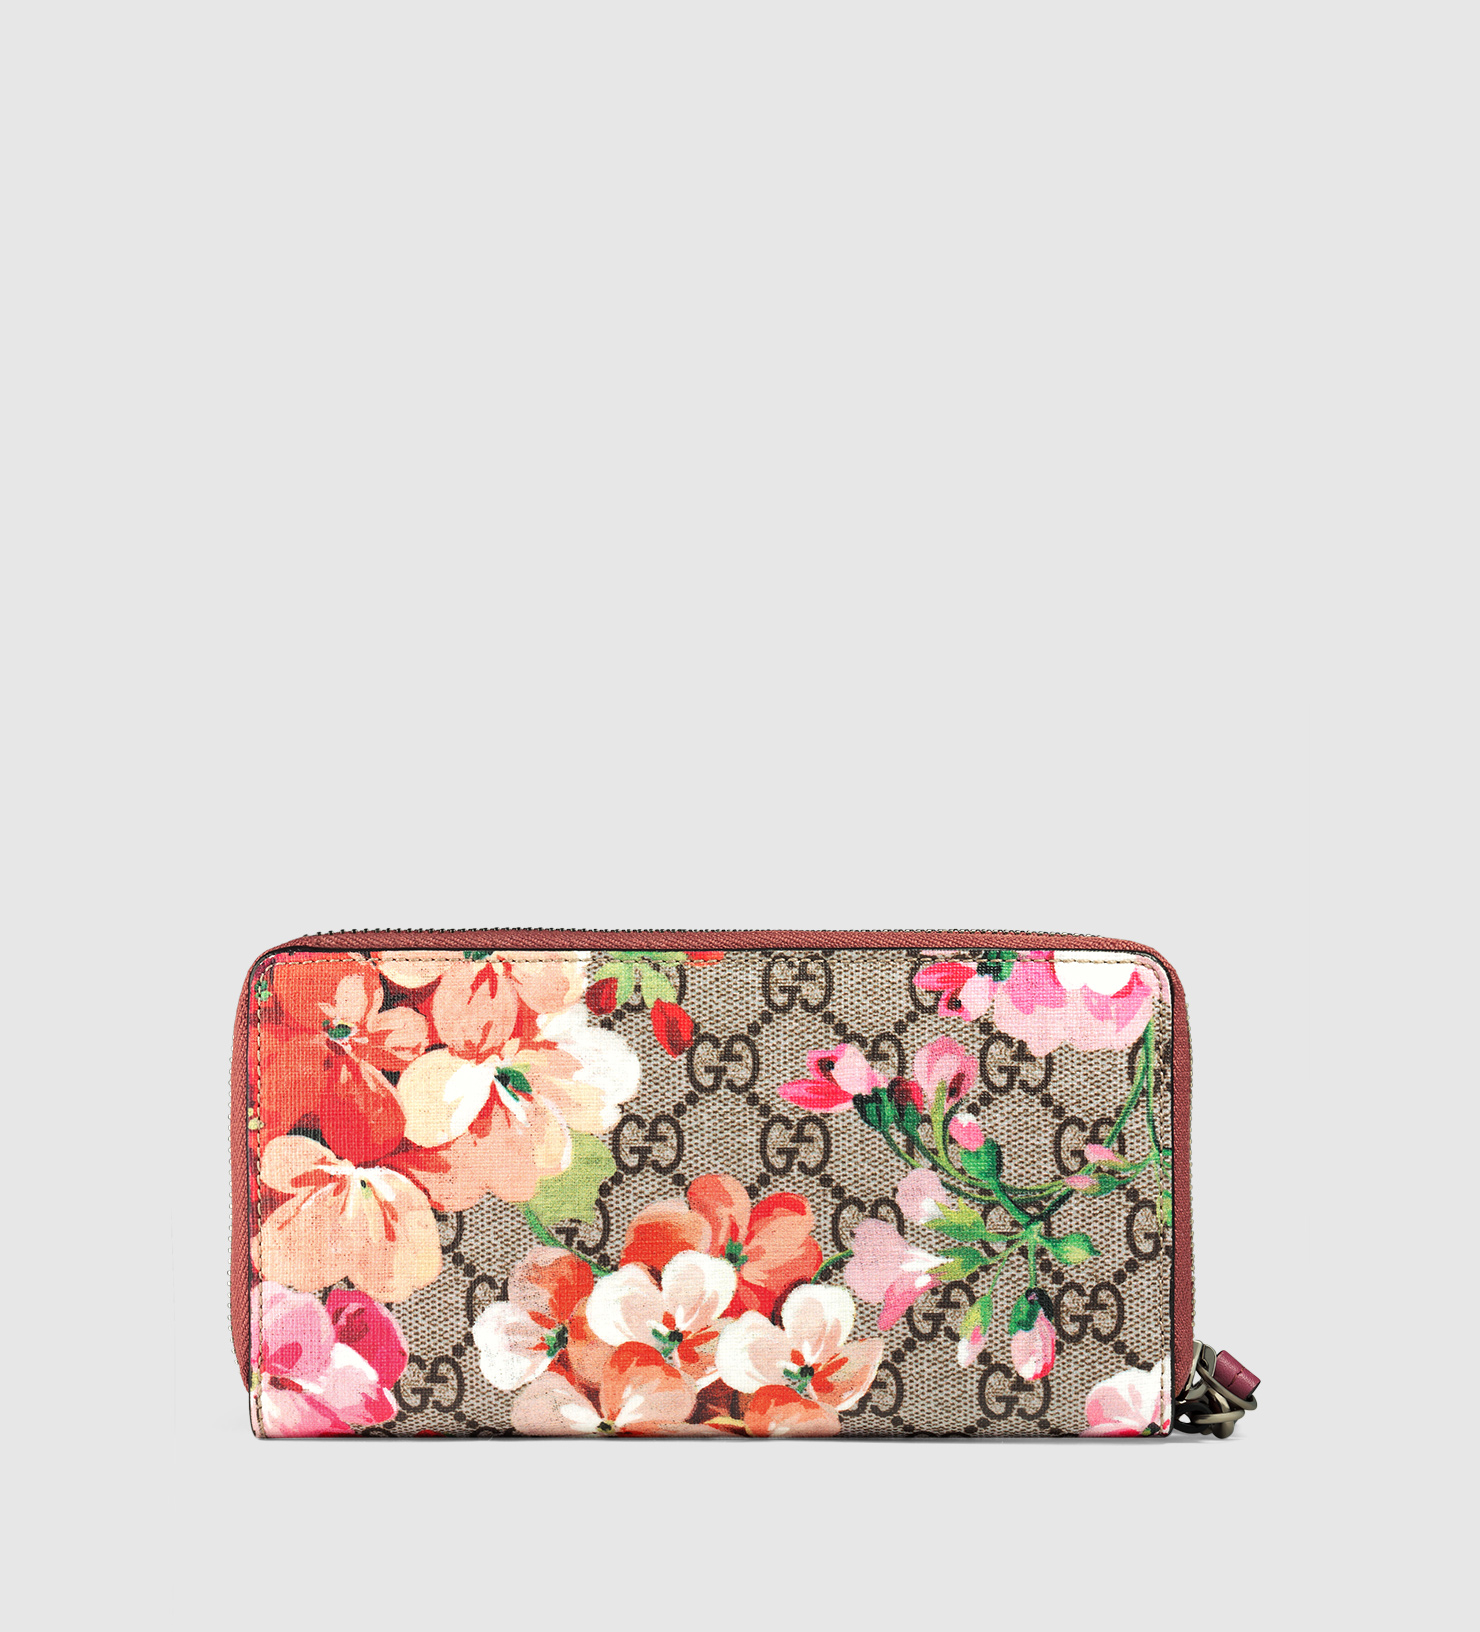 e881472974ae97 Gucci Gg Blooms Wrist Wallet in Pink - Lyst